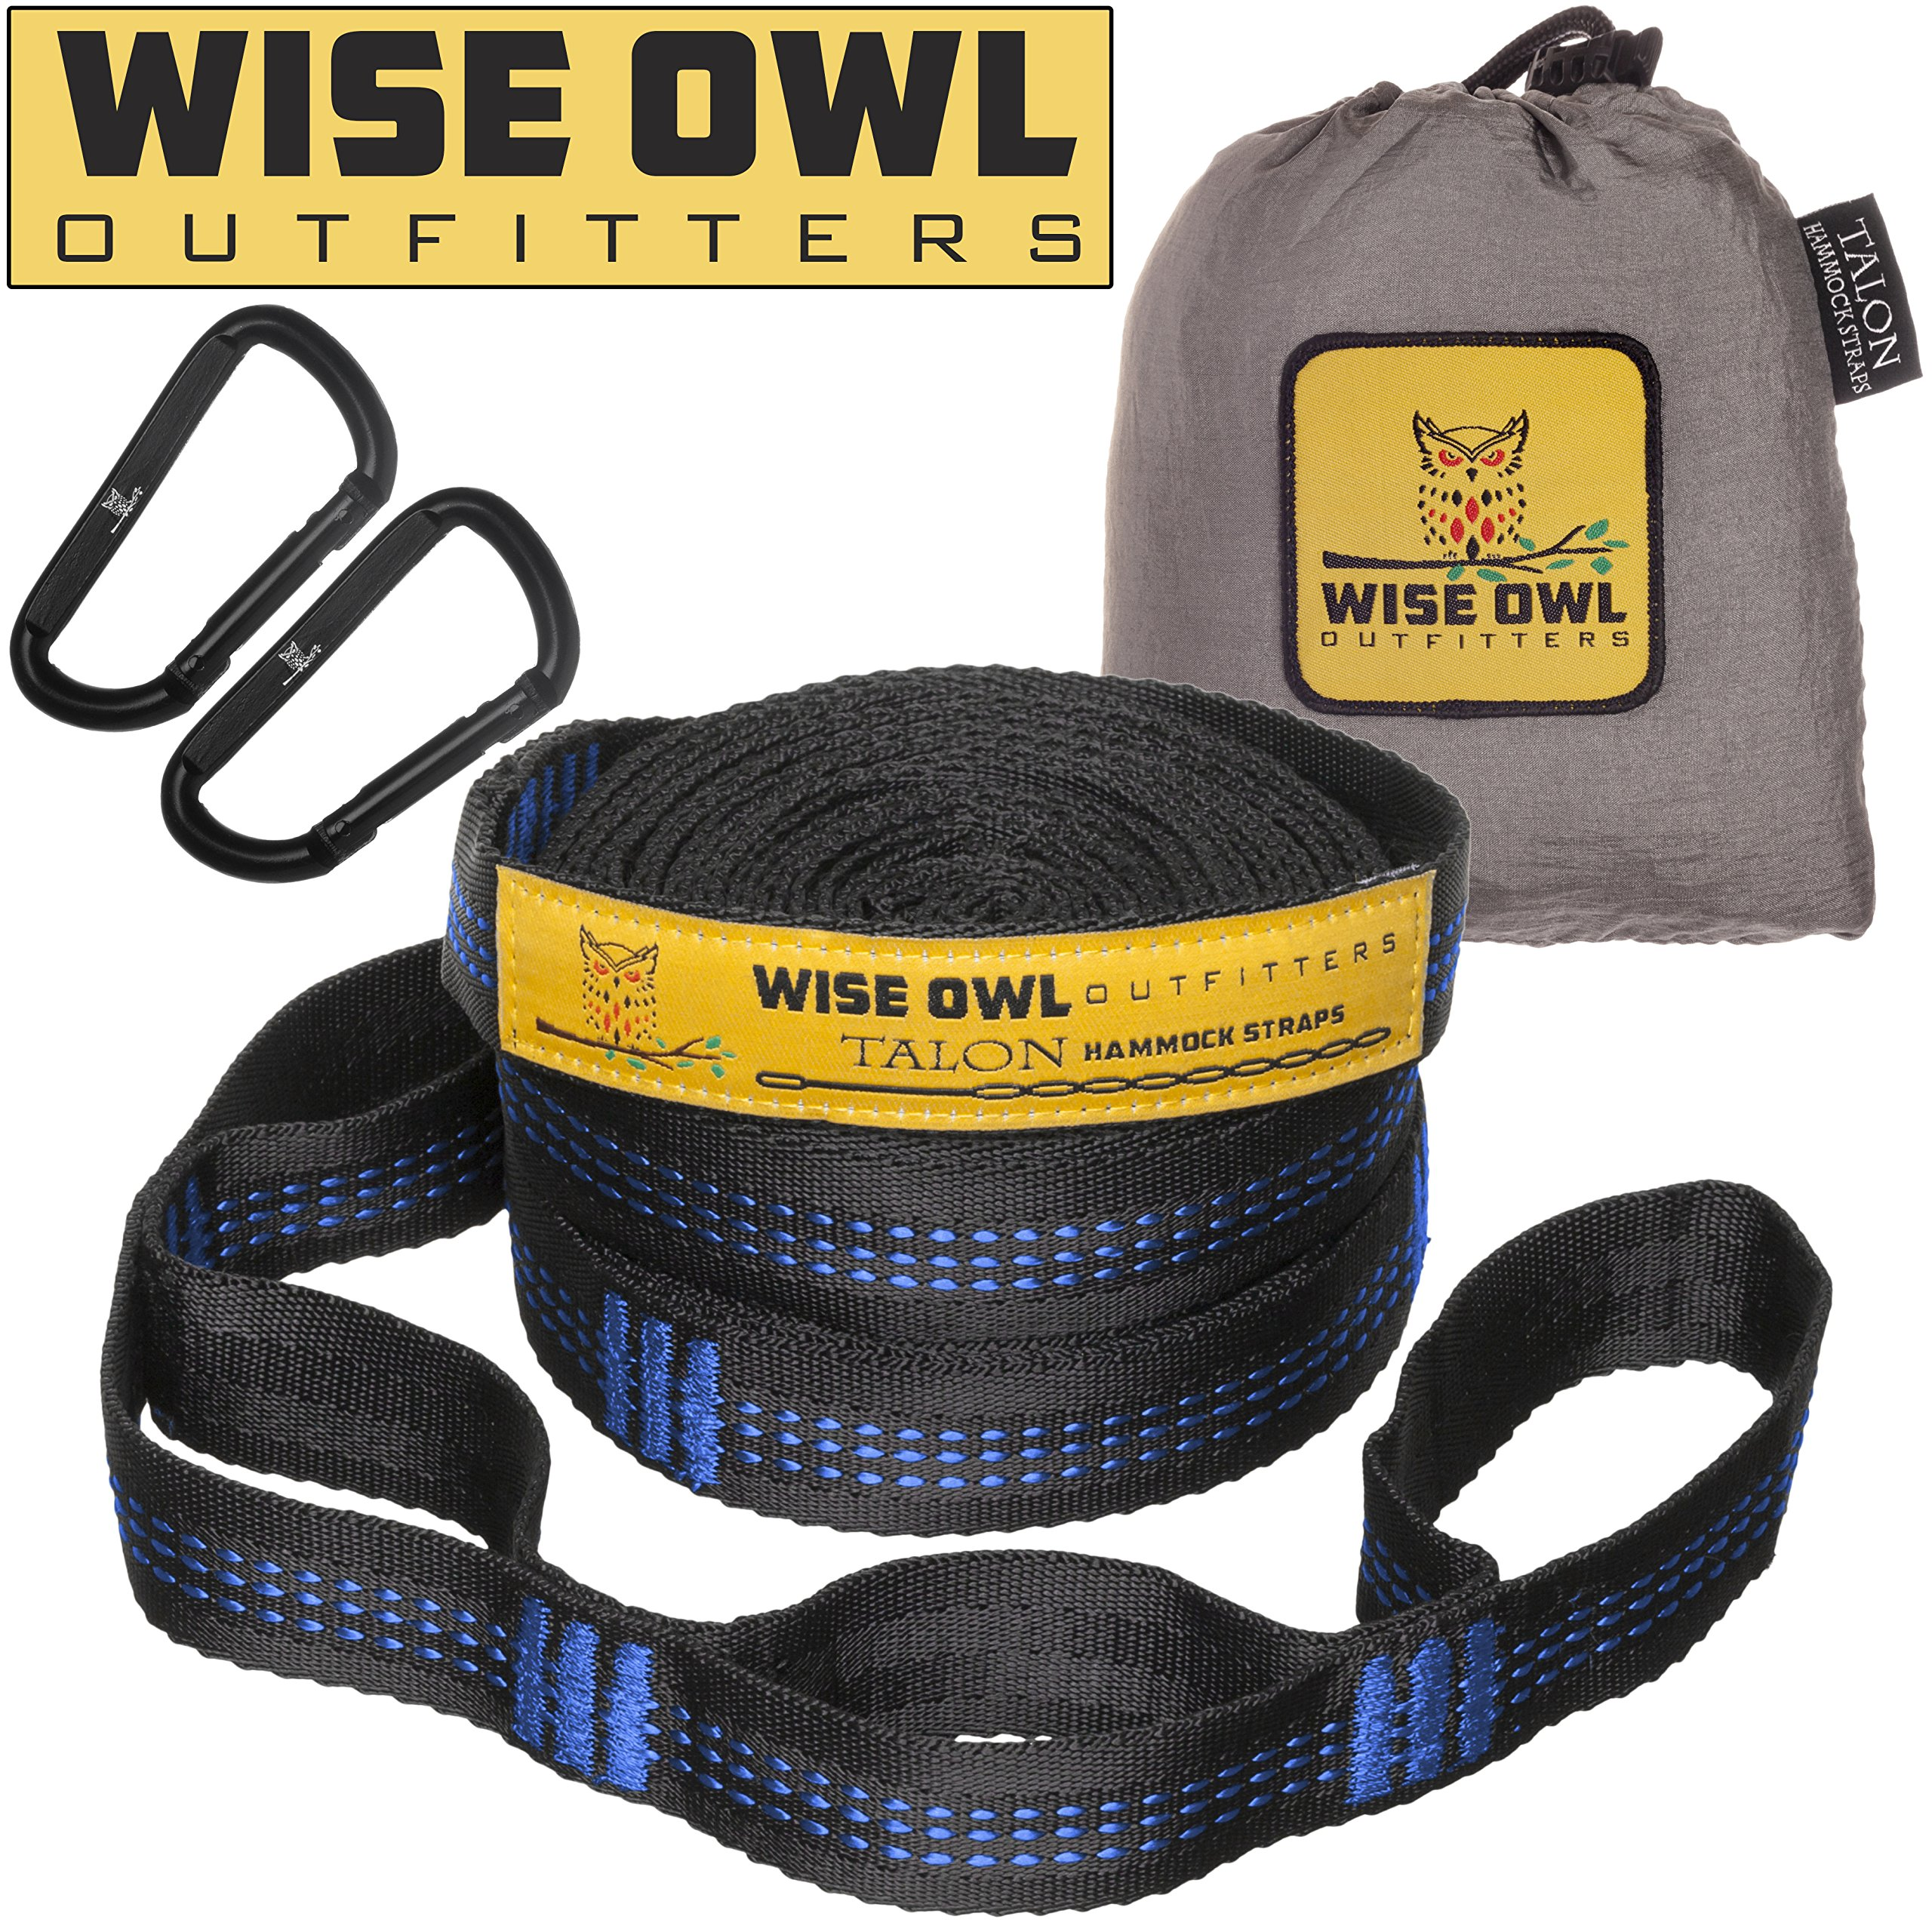 Wise Owl Outfitters Talon Hammock Straps - Combined 20 Ft Long, 38 Loops W/ 2 Carabiners - Easily Adjustable, Tree Friendly Must Have Gear For Camping Hammocks Like Eno Blue Stitching by Wise Owl Outfitters